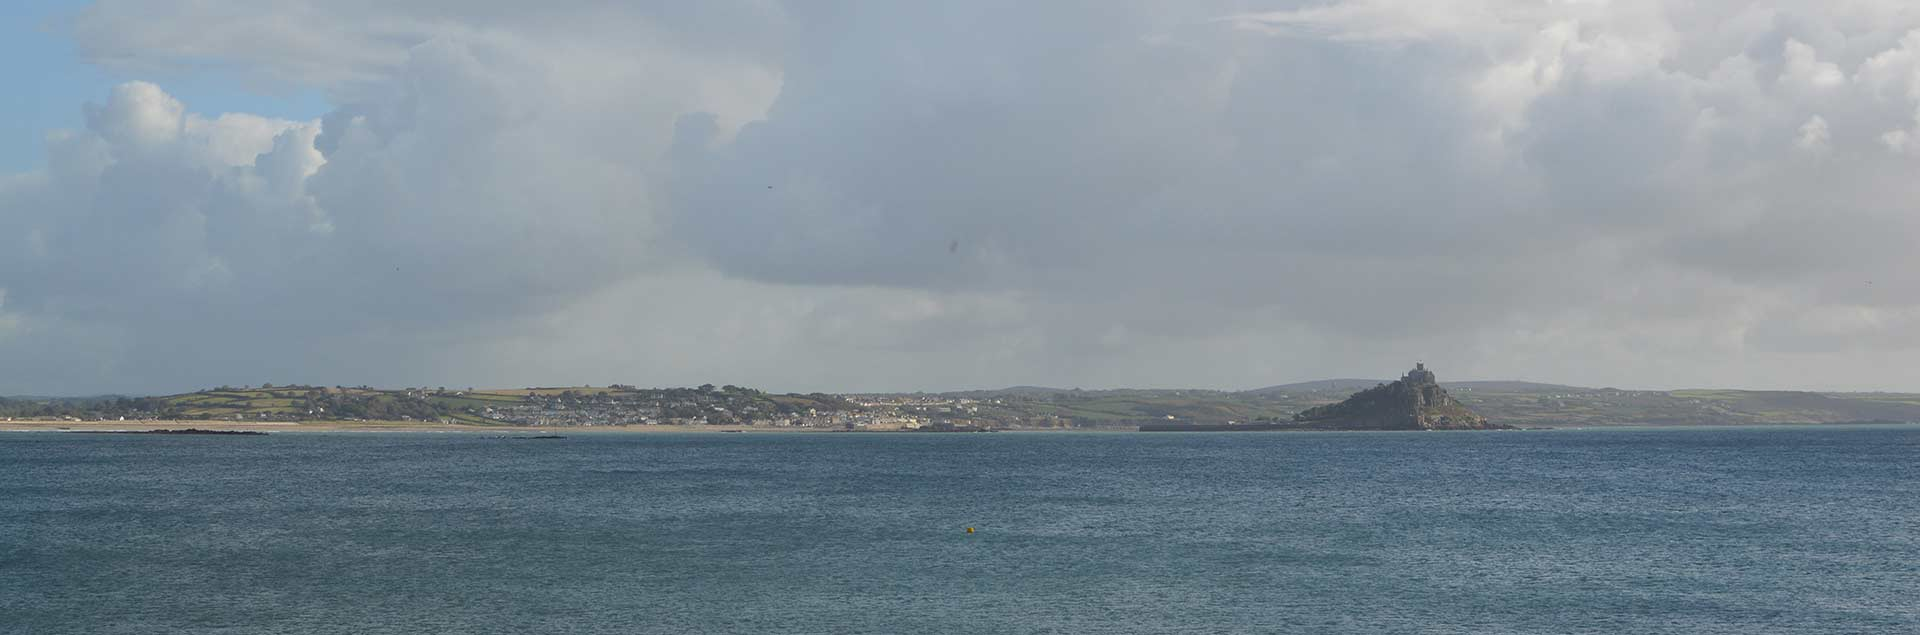 Mount's Bay view from Penzance Cornwall